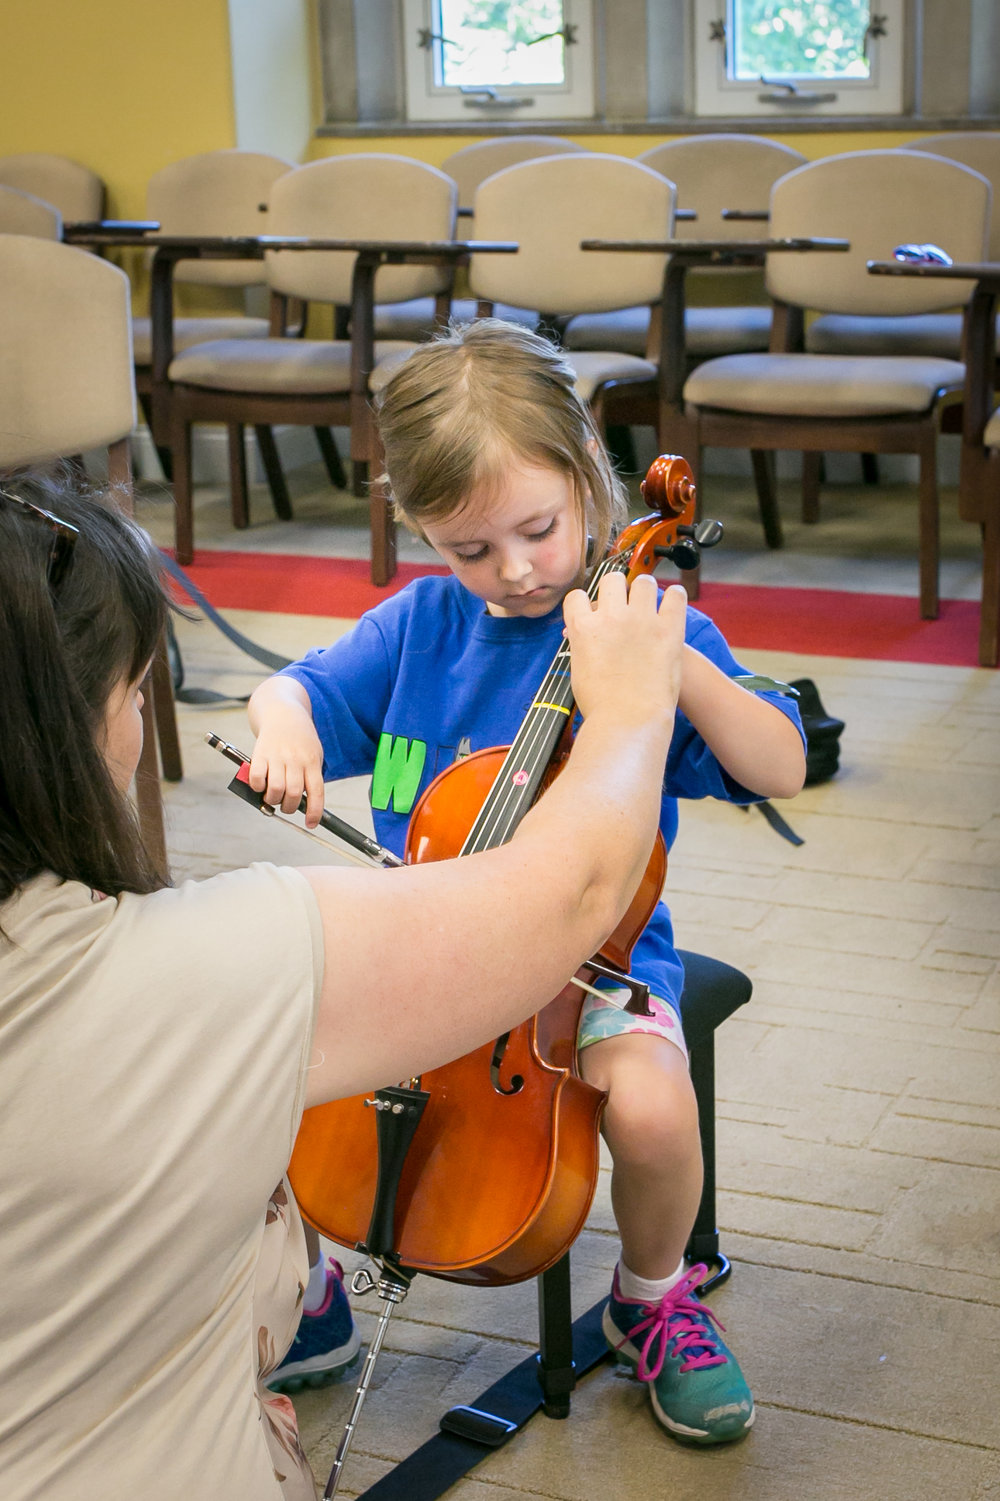 SMC TESTIMONIALS - Hear what parents of current students have to say about Suzuki Music Columbus